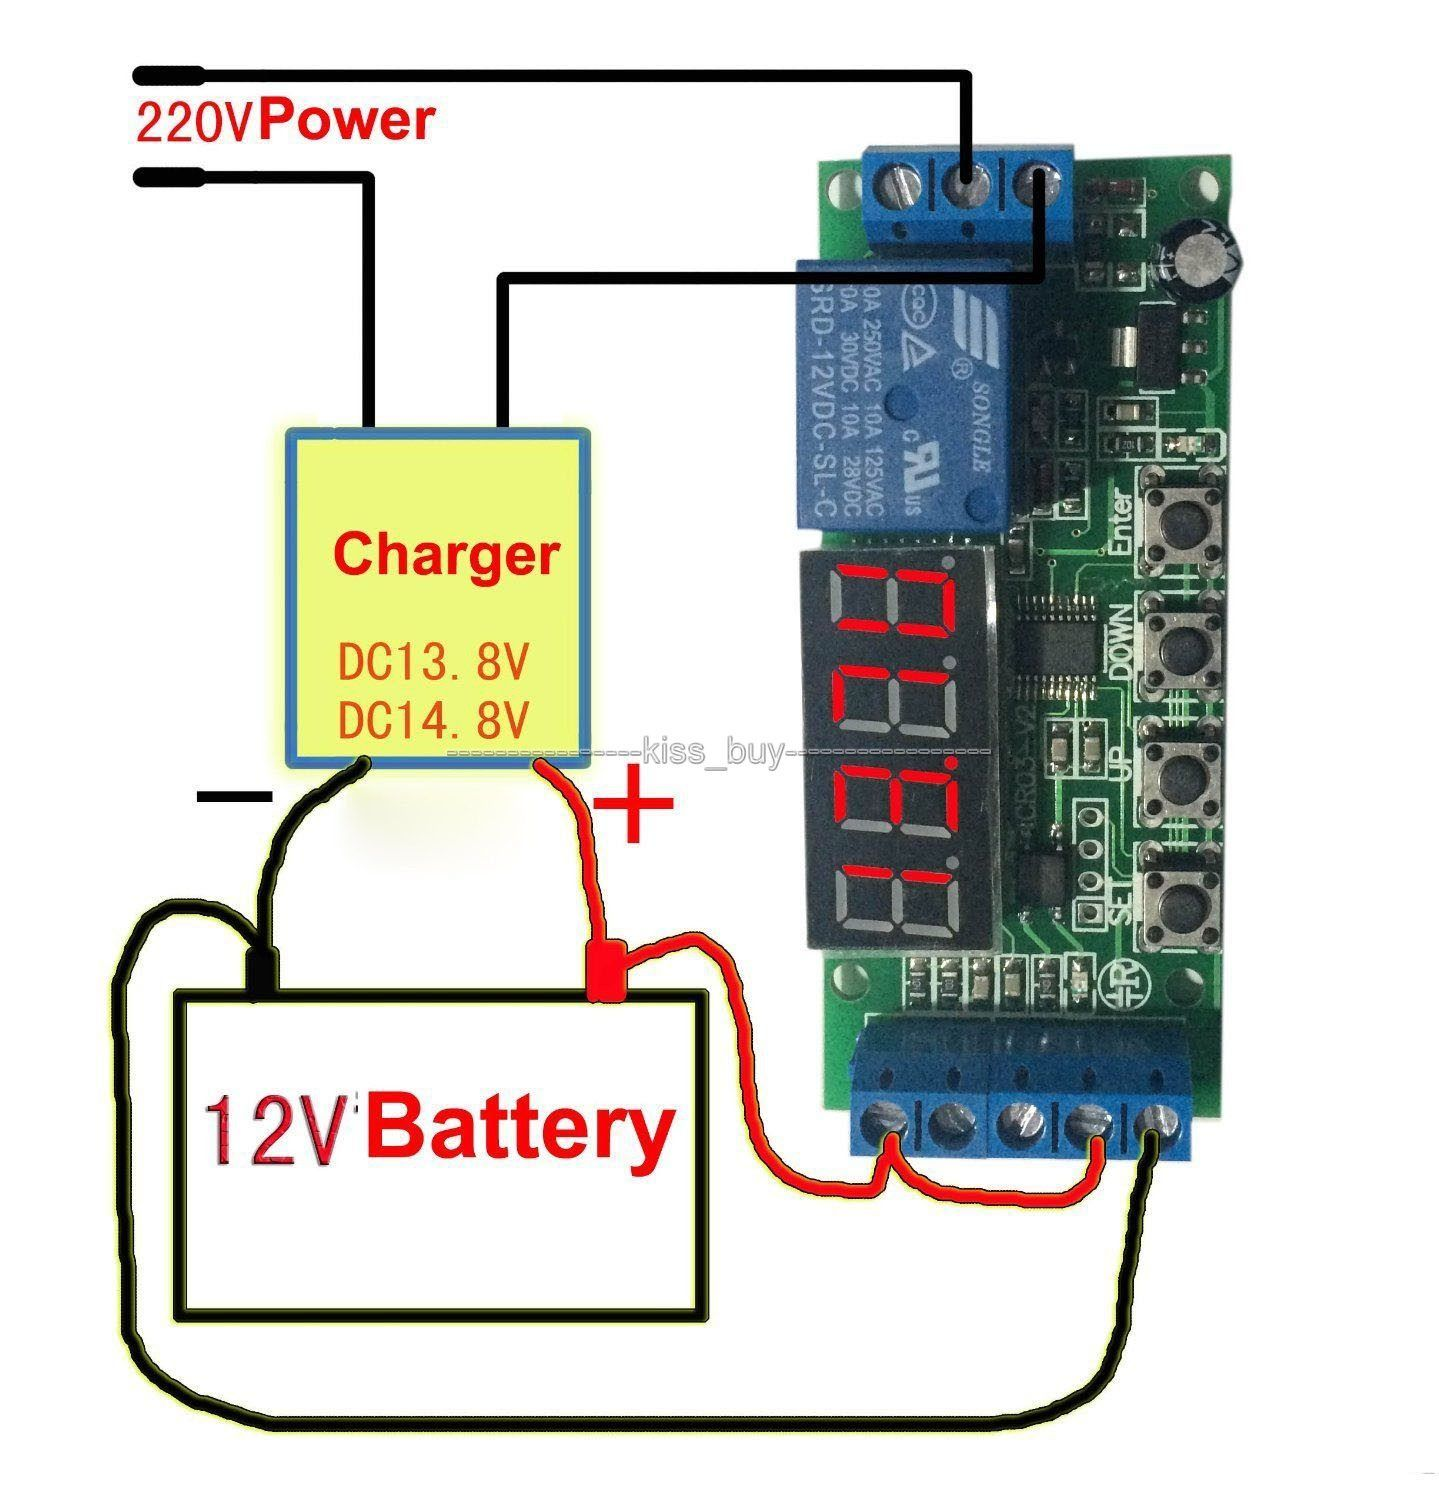 Dc 12v Automatic Battery Charger Charging Controller Protection Board Led Display Digital For Car Automatic Battery Charger Charger Battery Charger